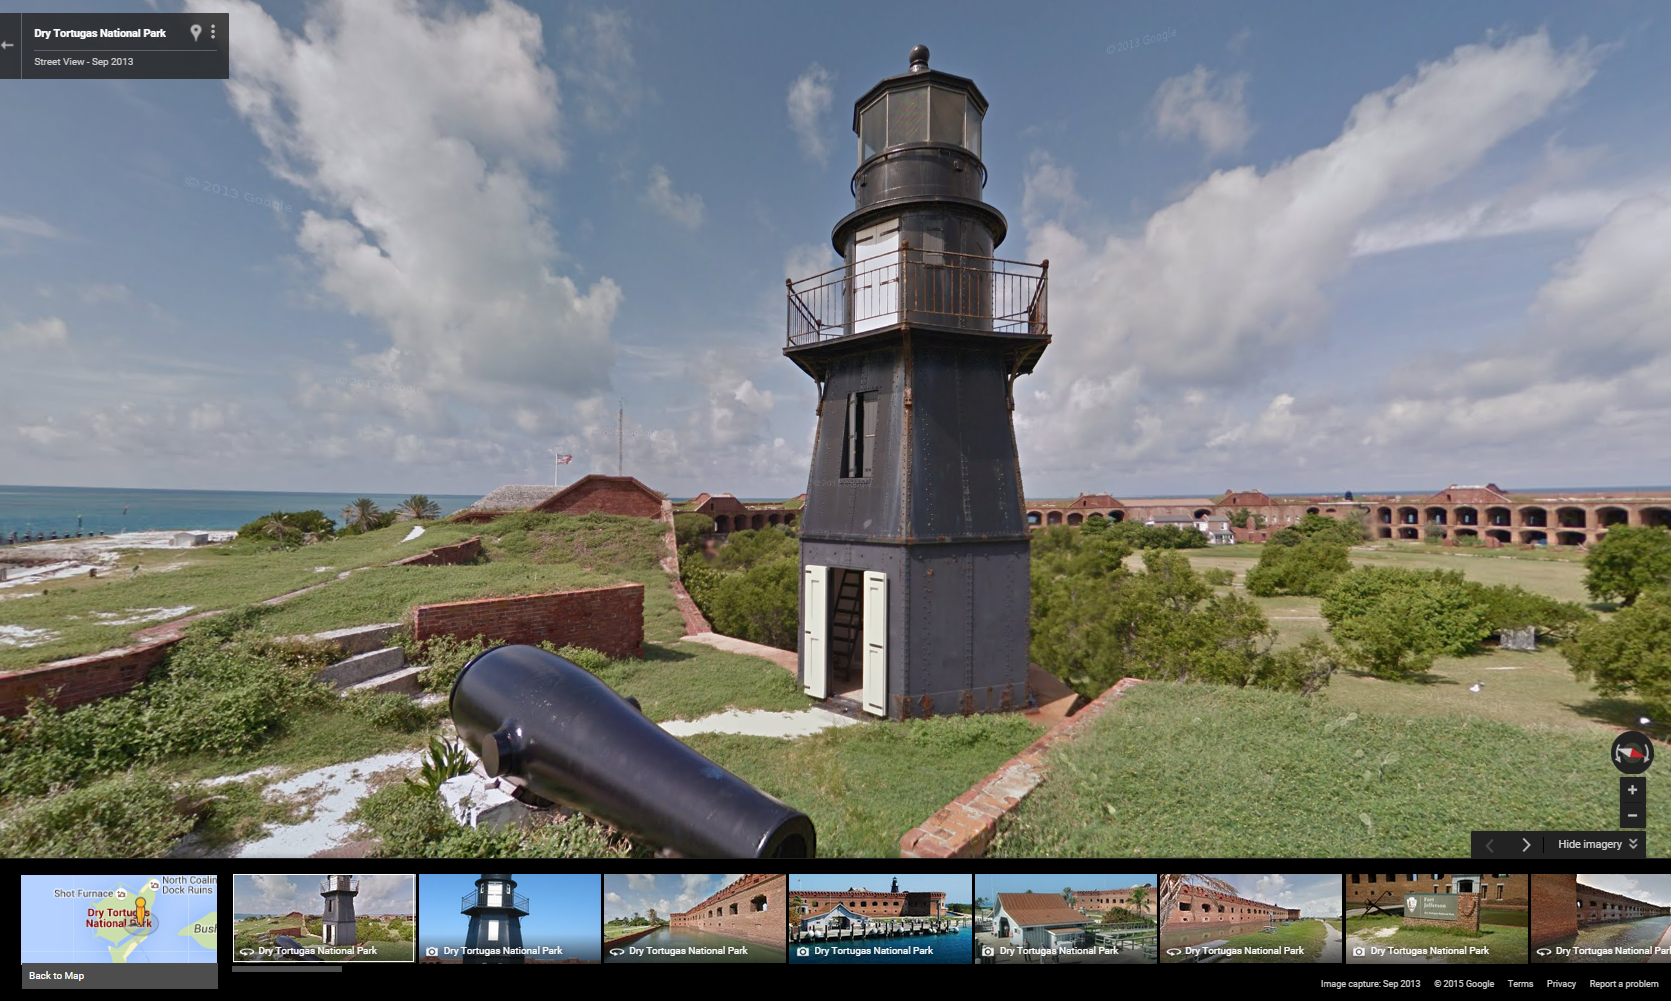 A screenshot of a view of the Dry Tortugas on Google Maps.